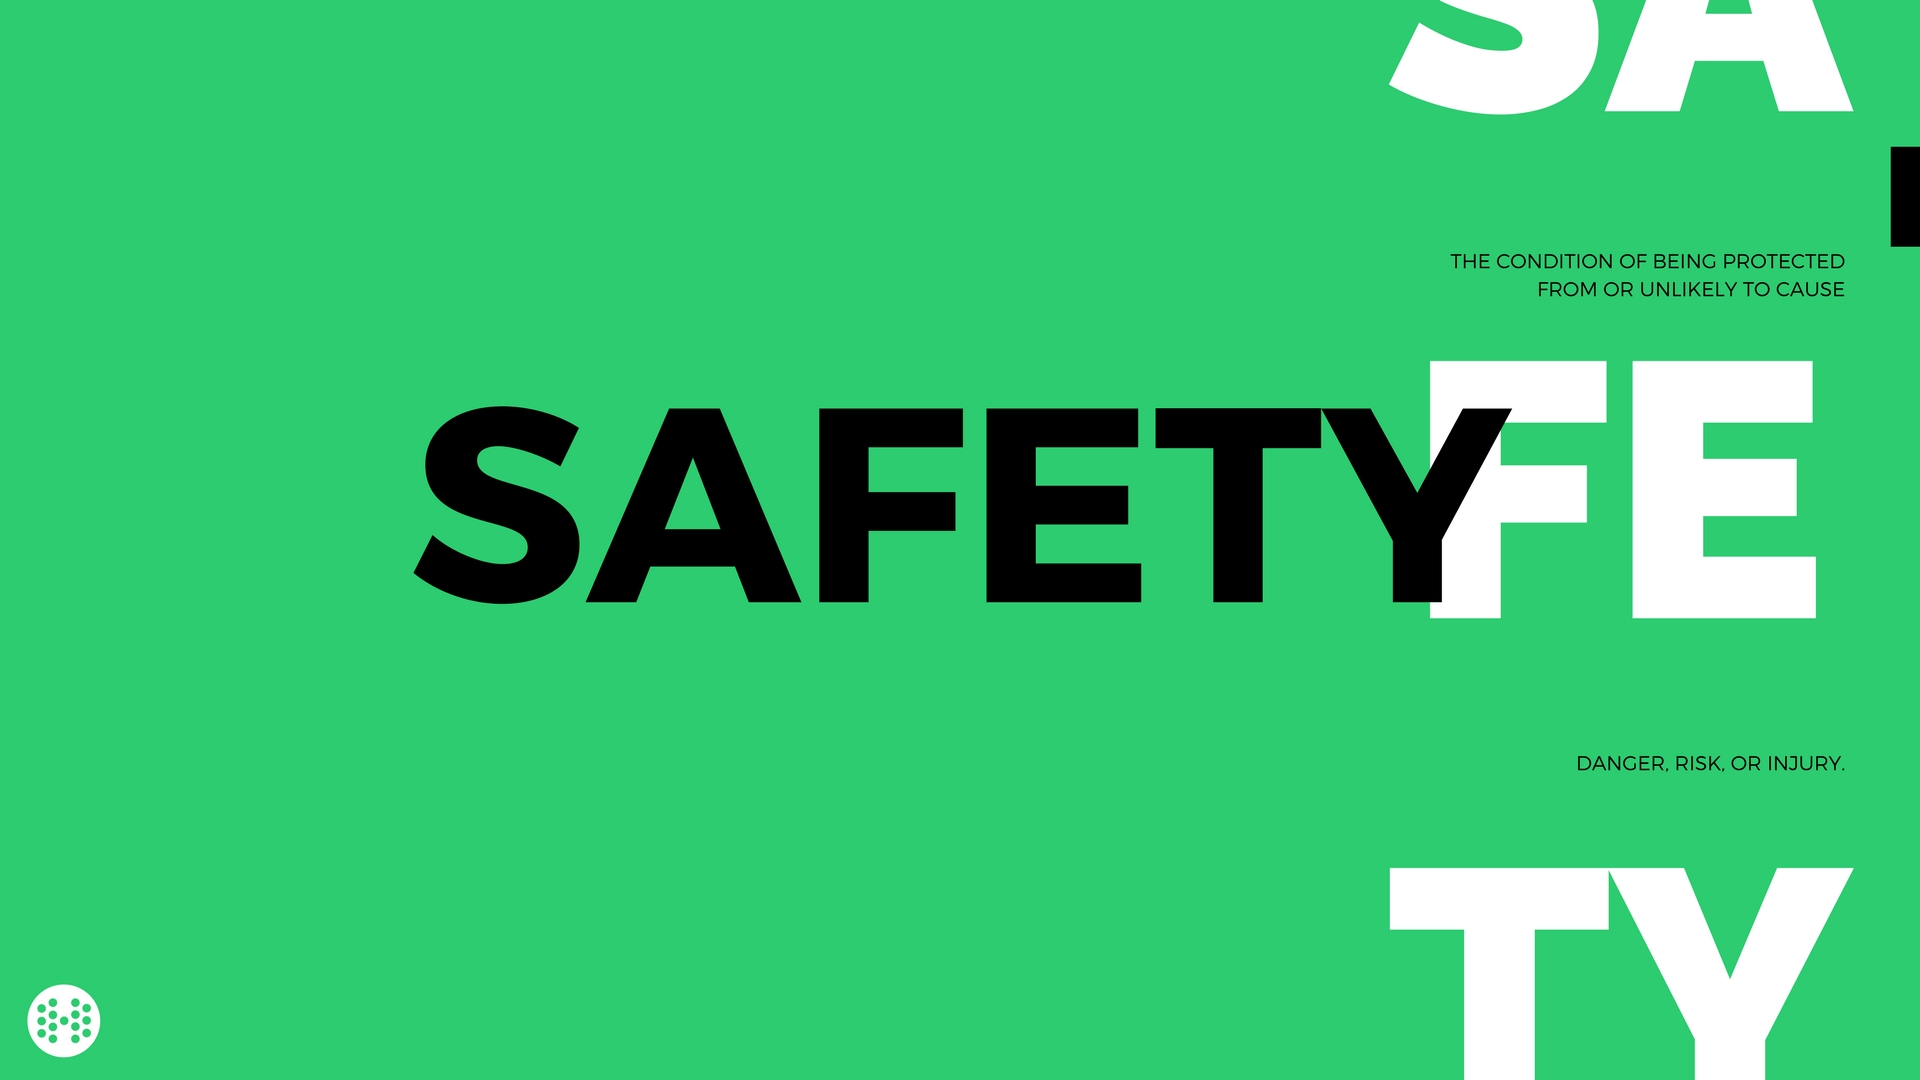 safety definition wallpaper